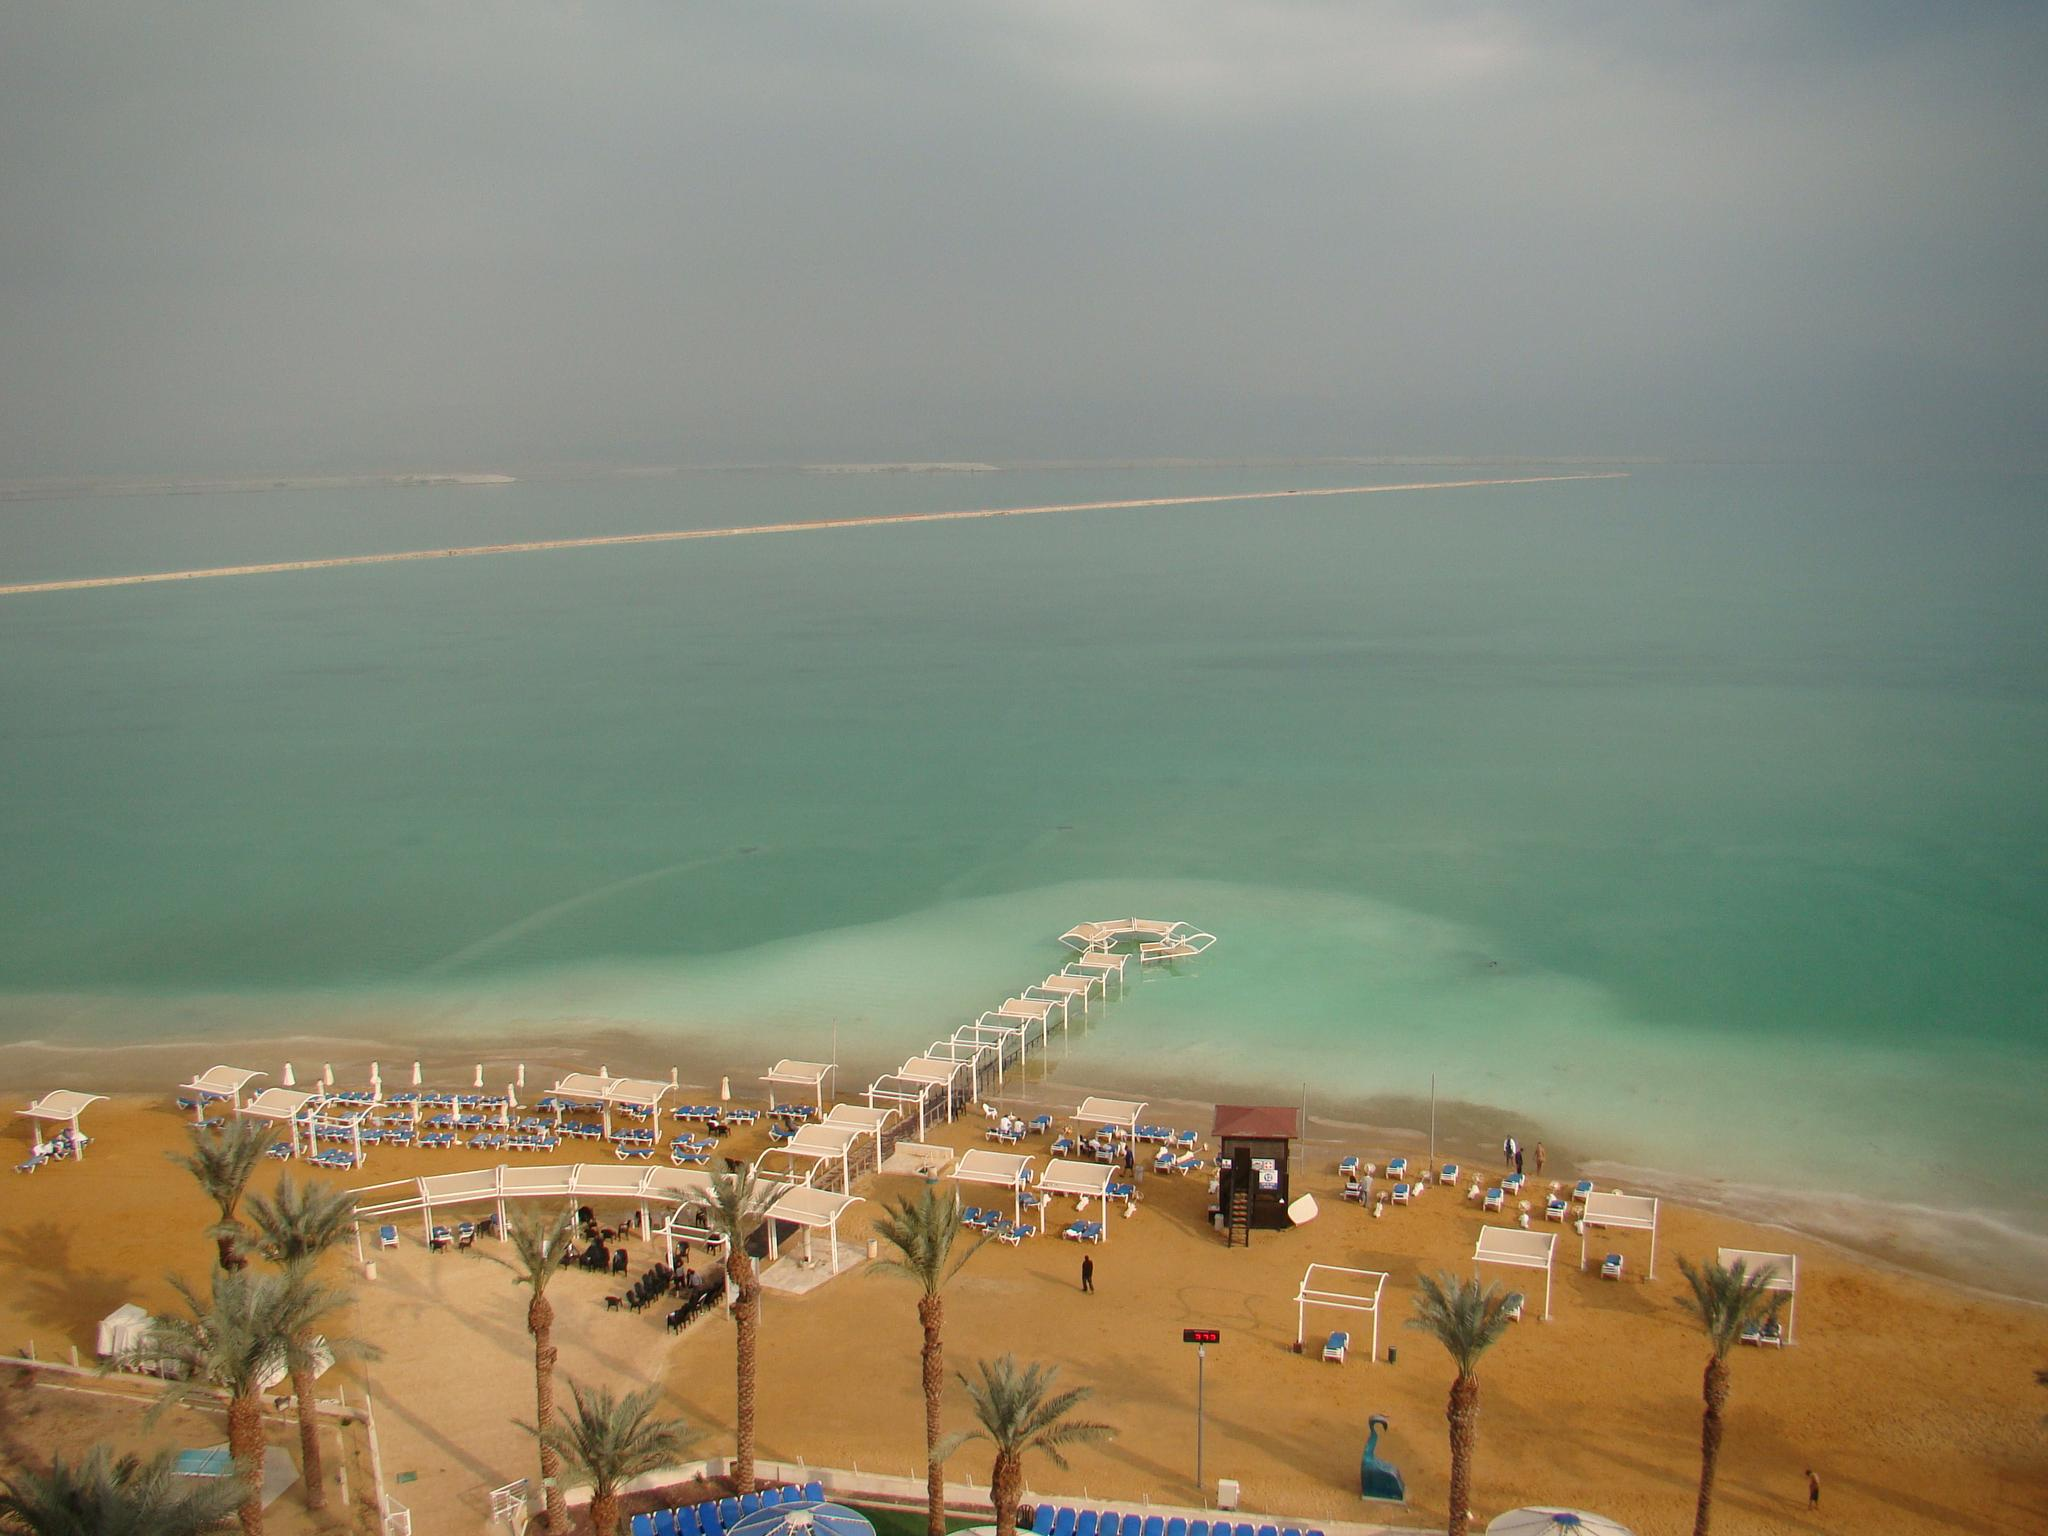 Dead sea by elsimarie.boll